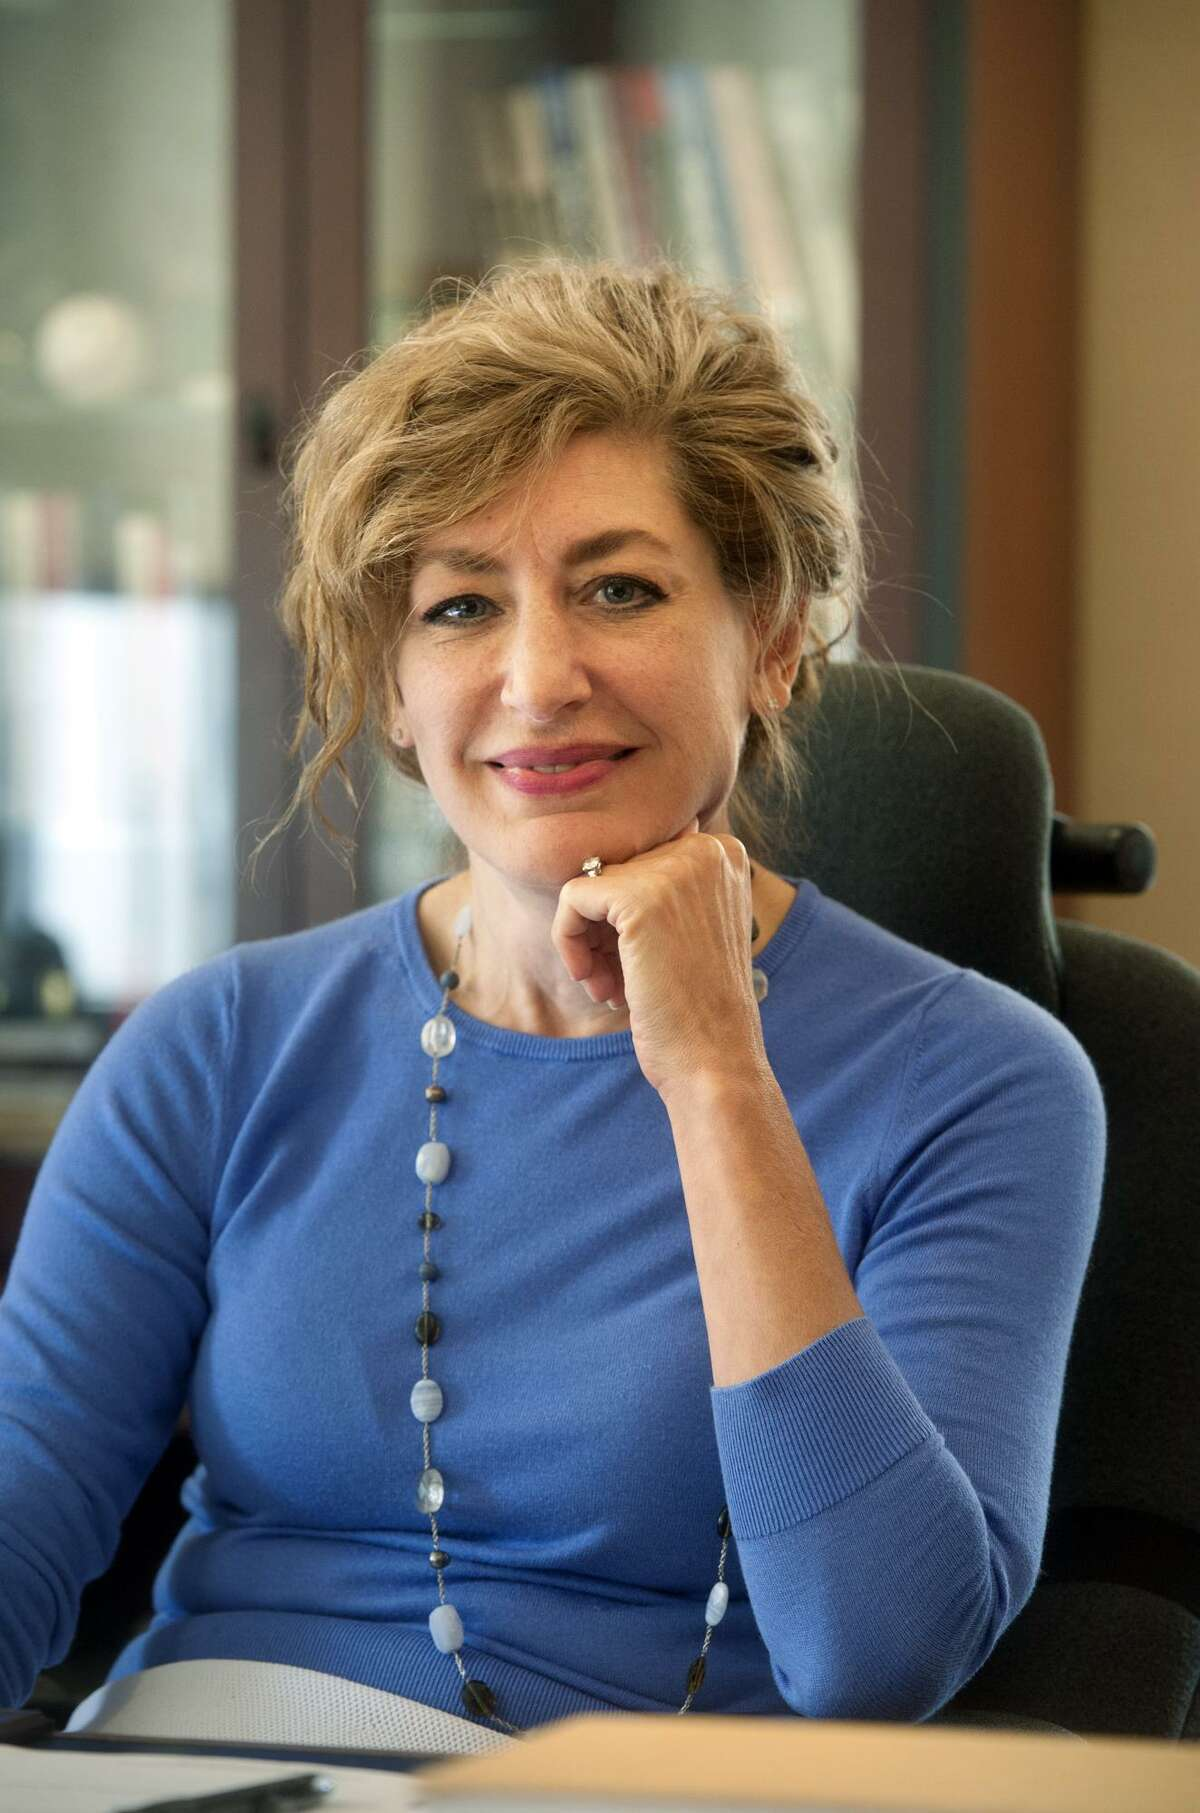 University of Connecticut President Susan Herbst poses in her office during an interview in Storrs on Monday. Herbst has announced that she will leave the university at the end of this academic year.